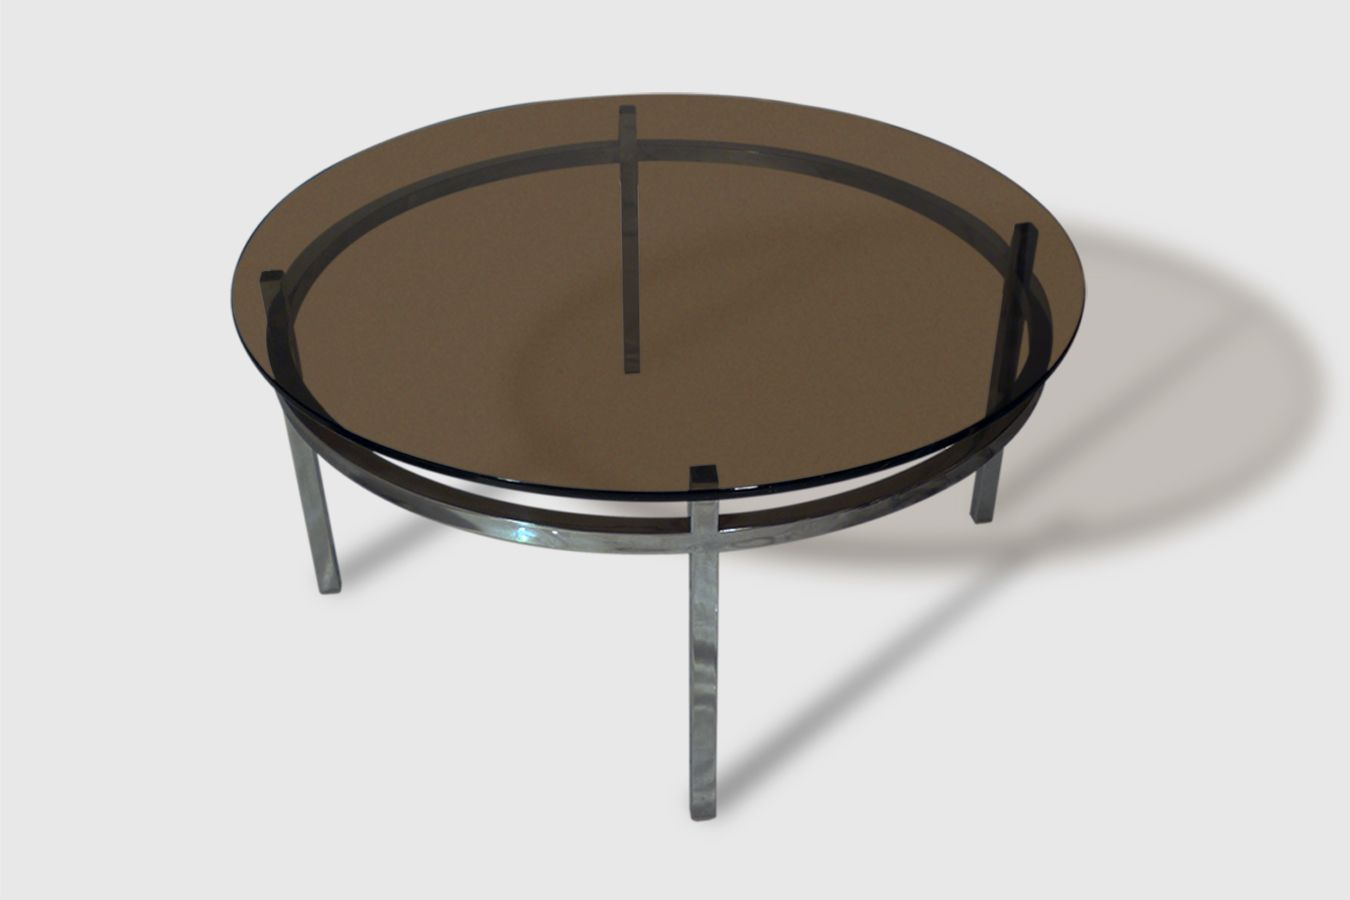 French round coffee table 1970s for sale at pamono for Round coffee tables for sale